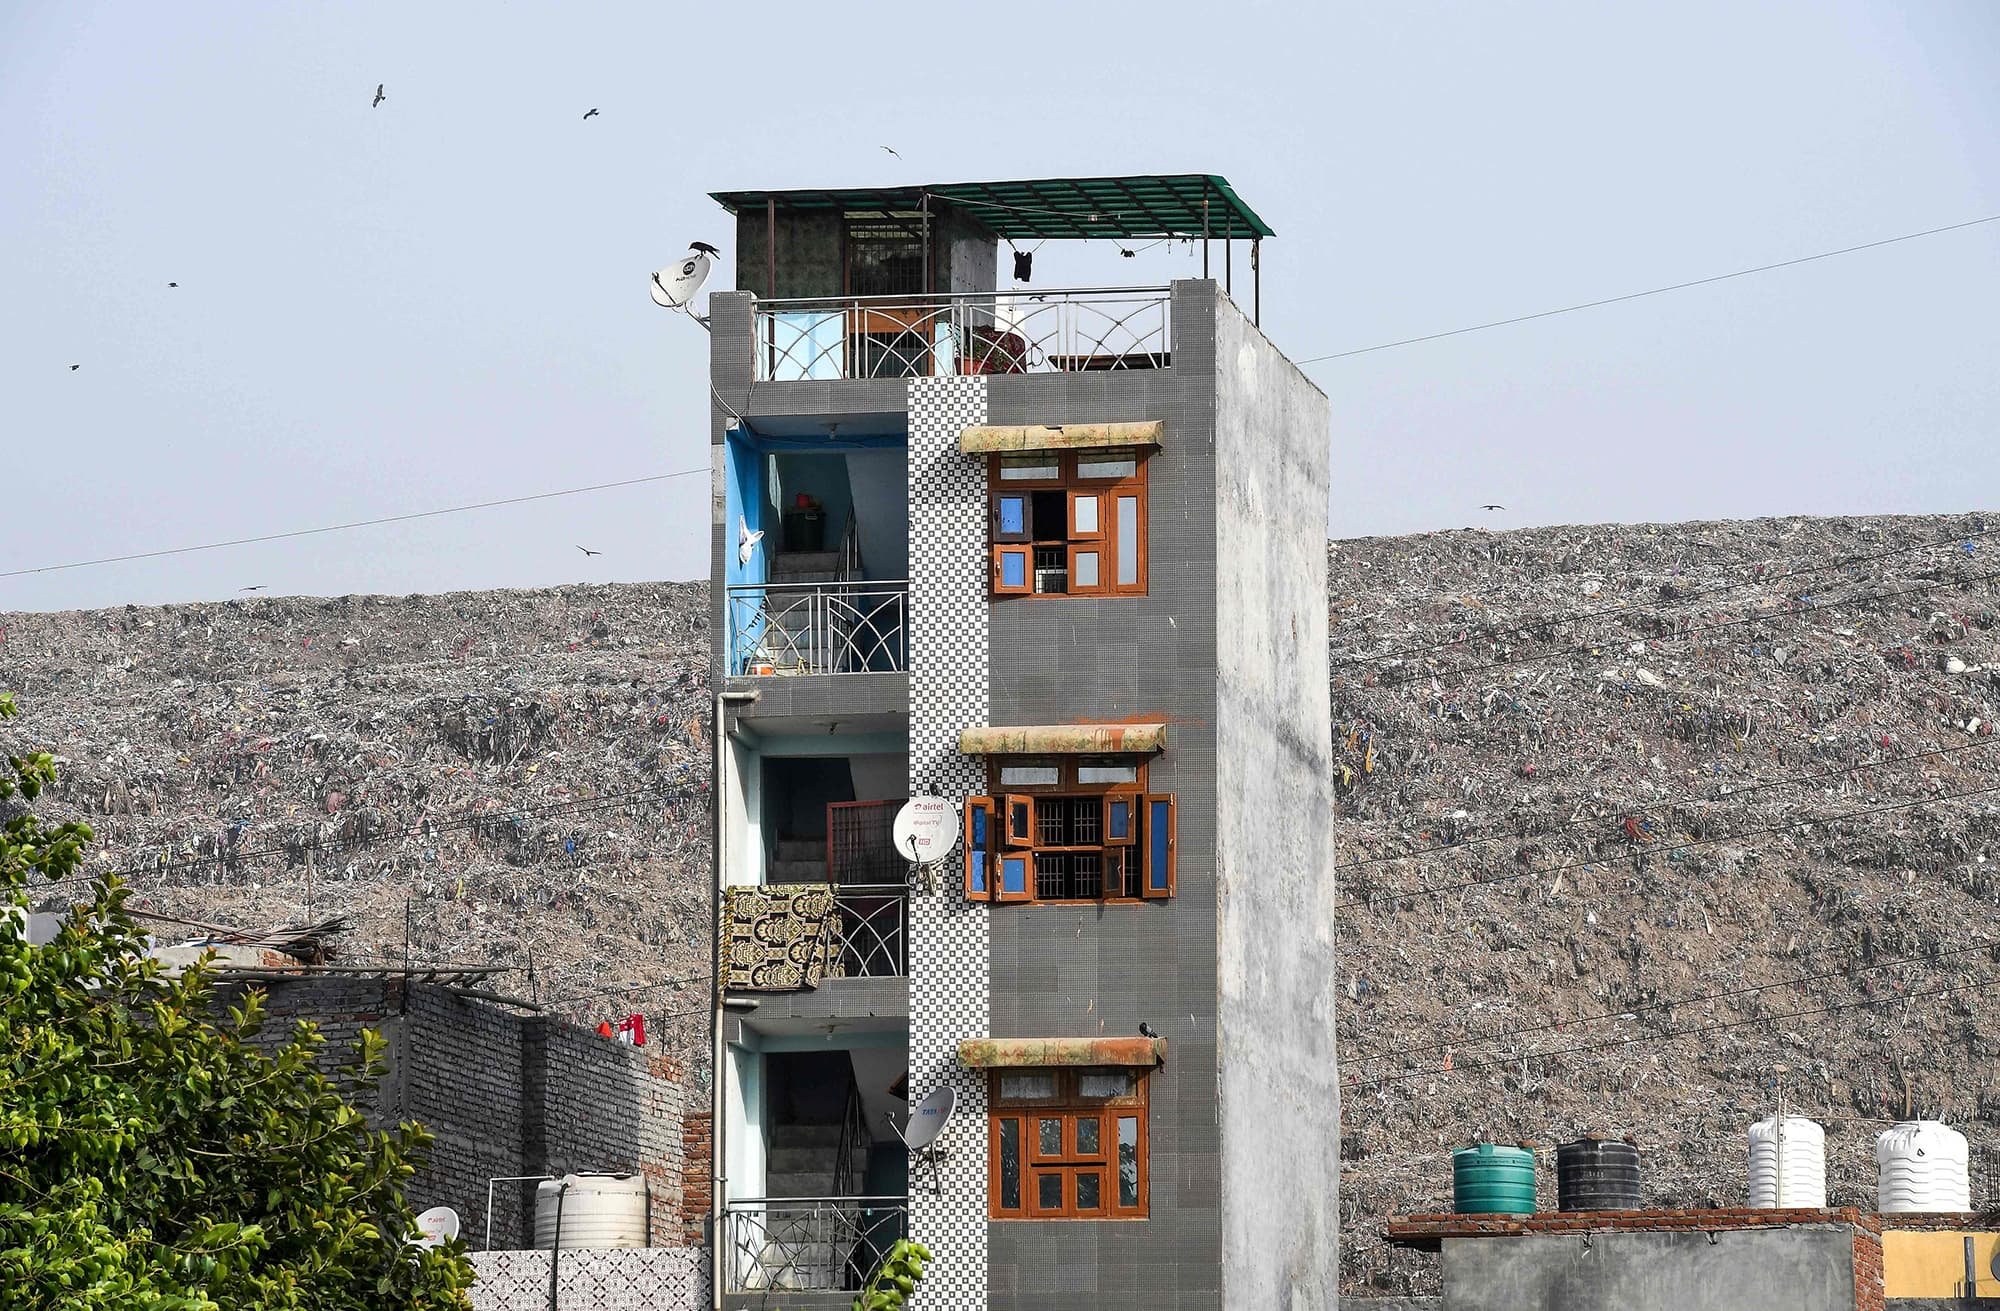 In this picture taken on June 3, a residential building is pictured next to the Ghazipur landfill site in the east of New Delhi. — AFP